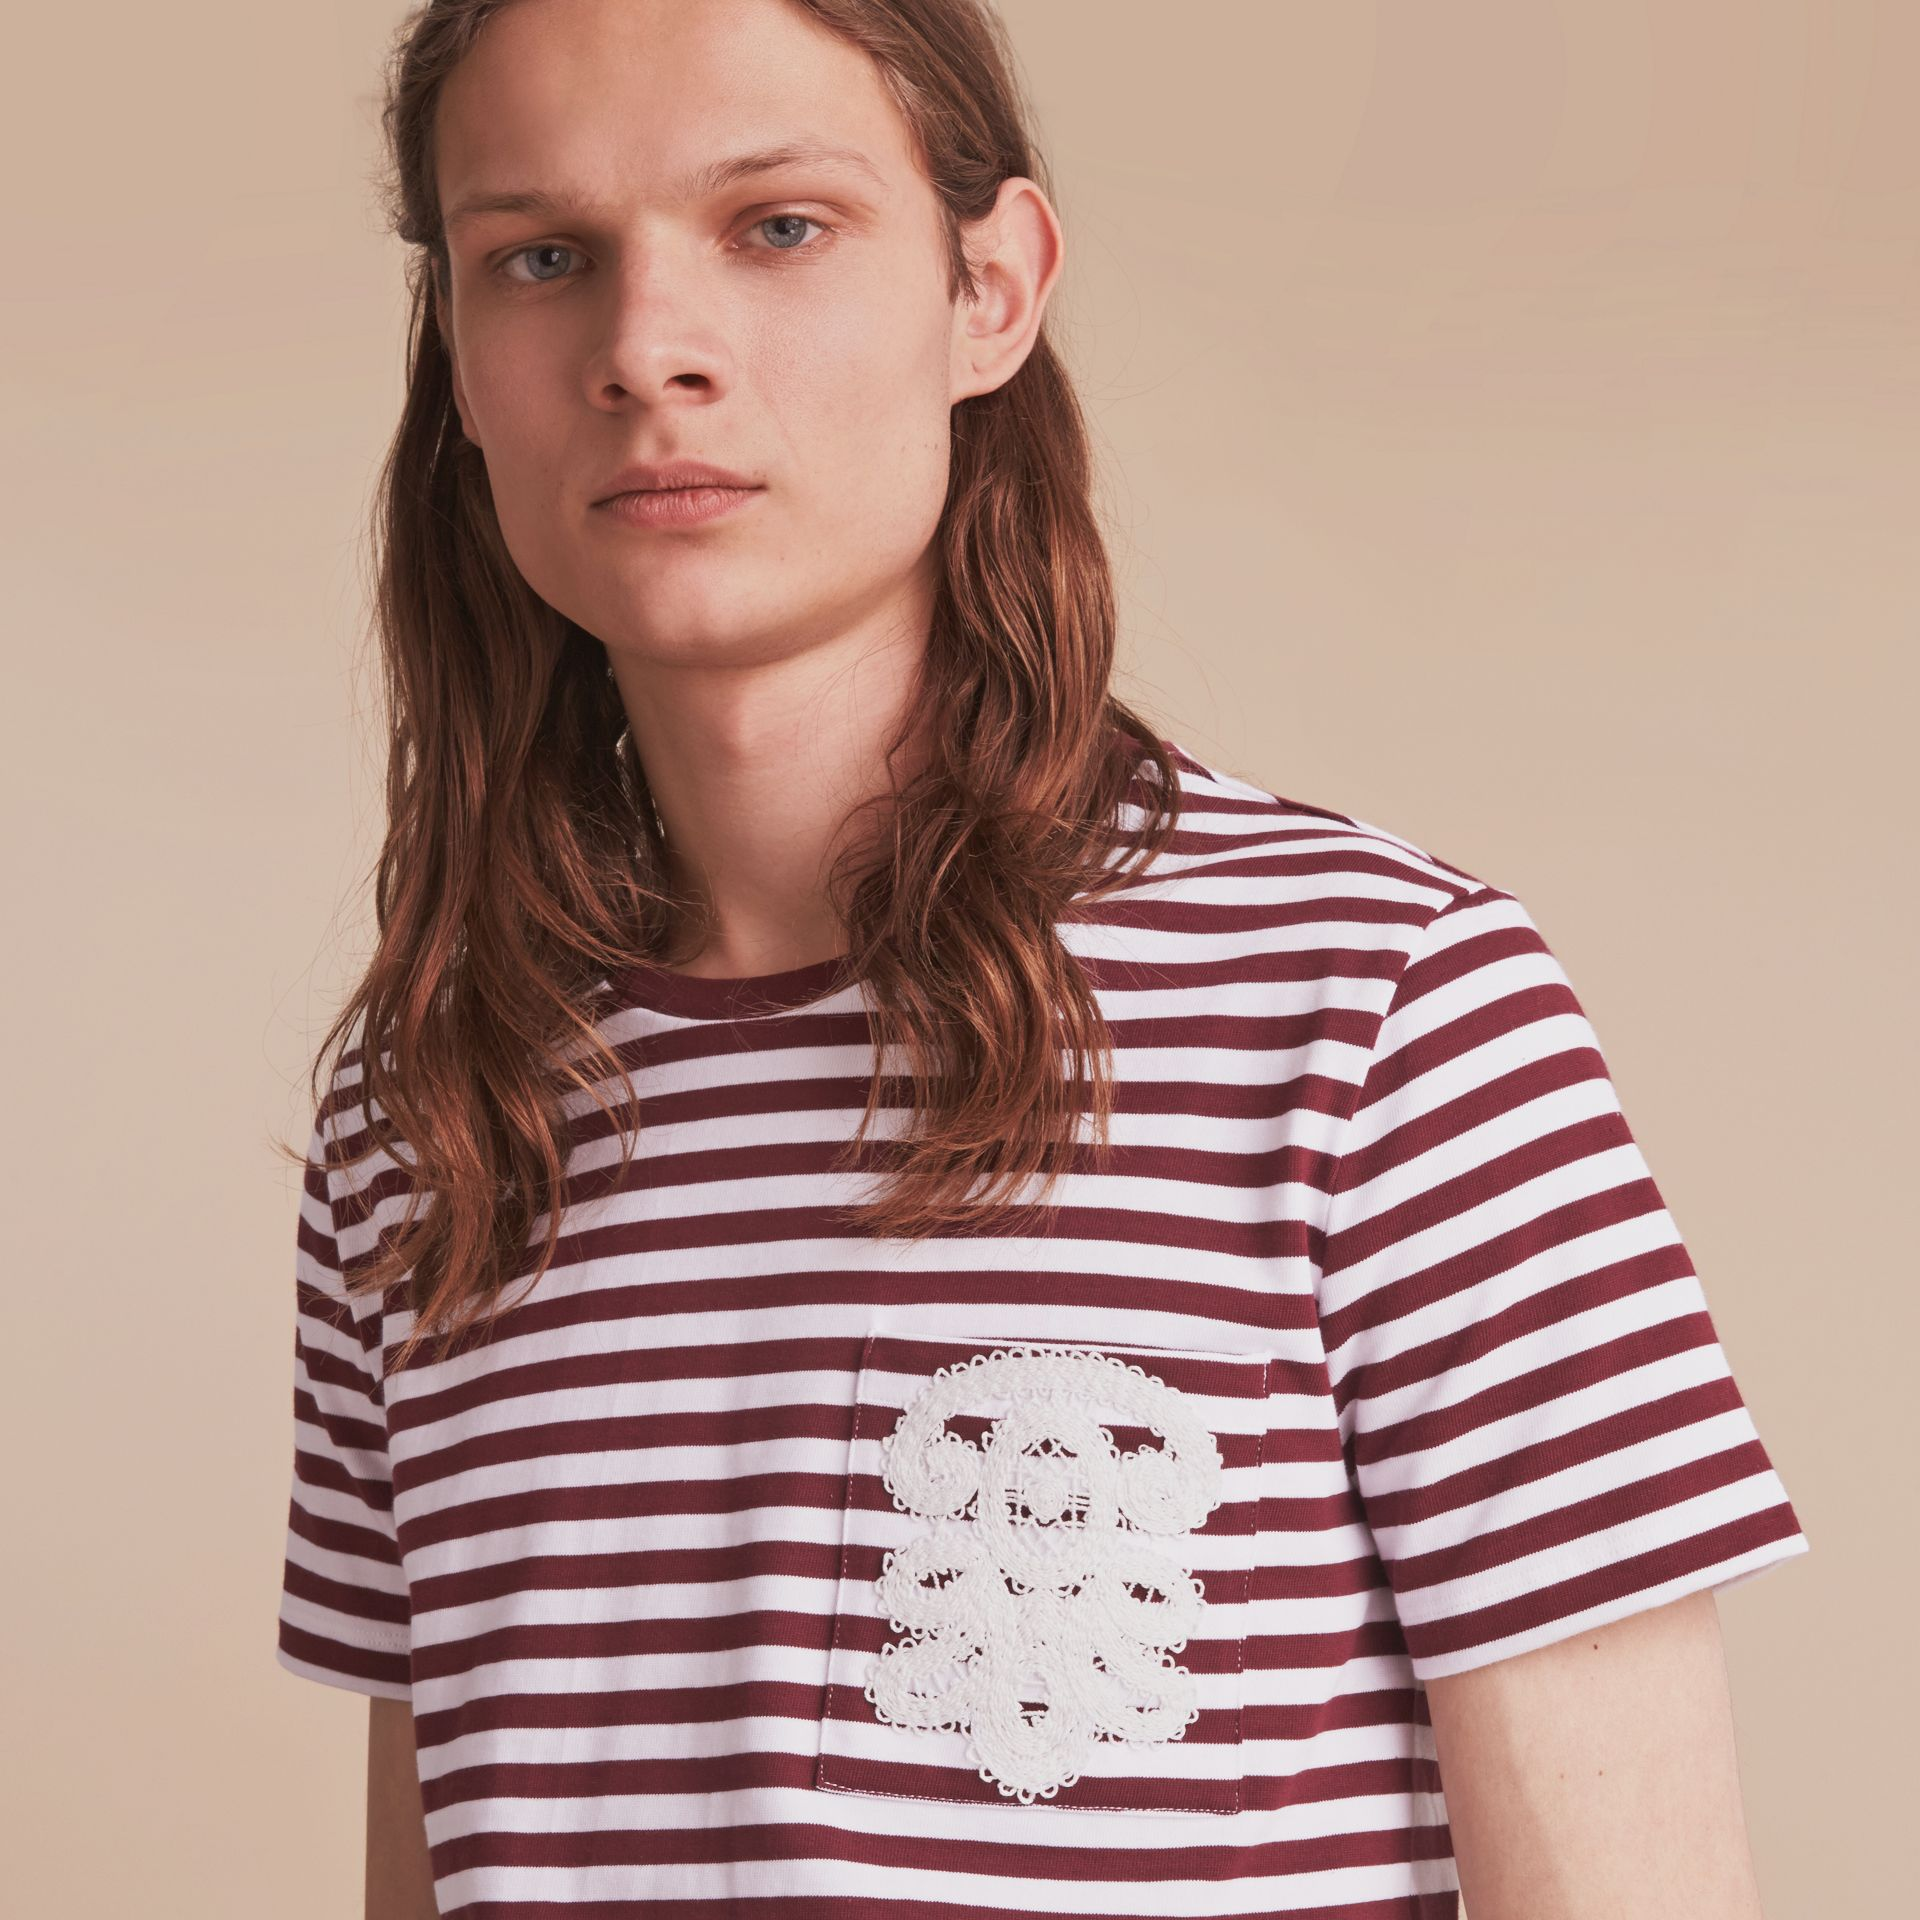 Lace Appliqué Detail Breton Stripe Cotton T-shirt in Burgundy/white - Men | Burberry - gallery image 5